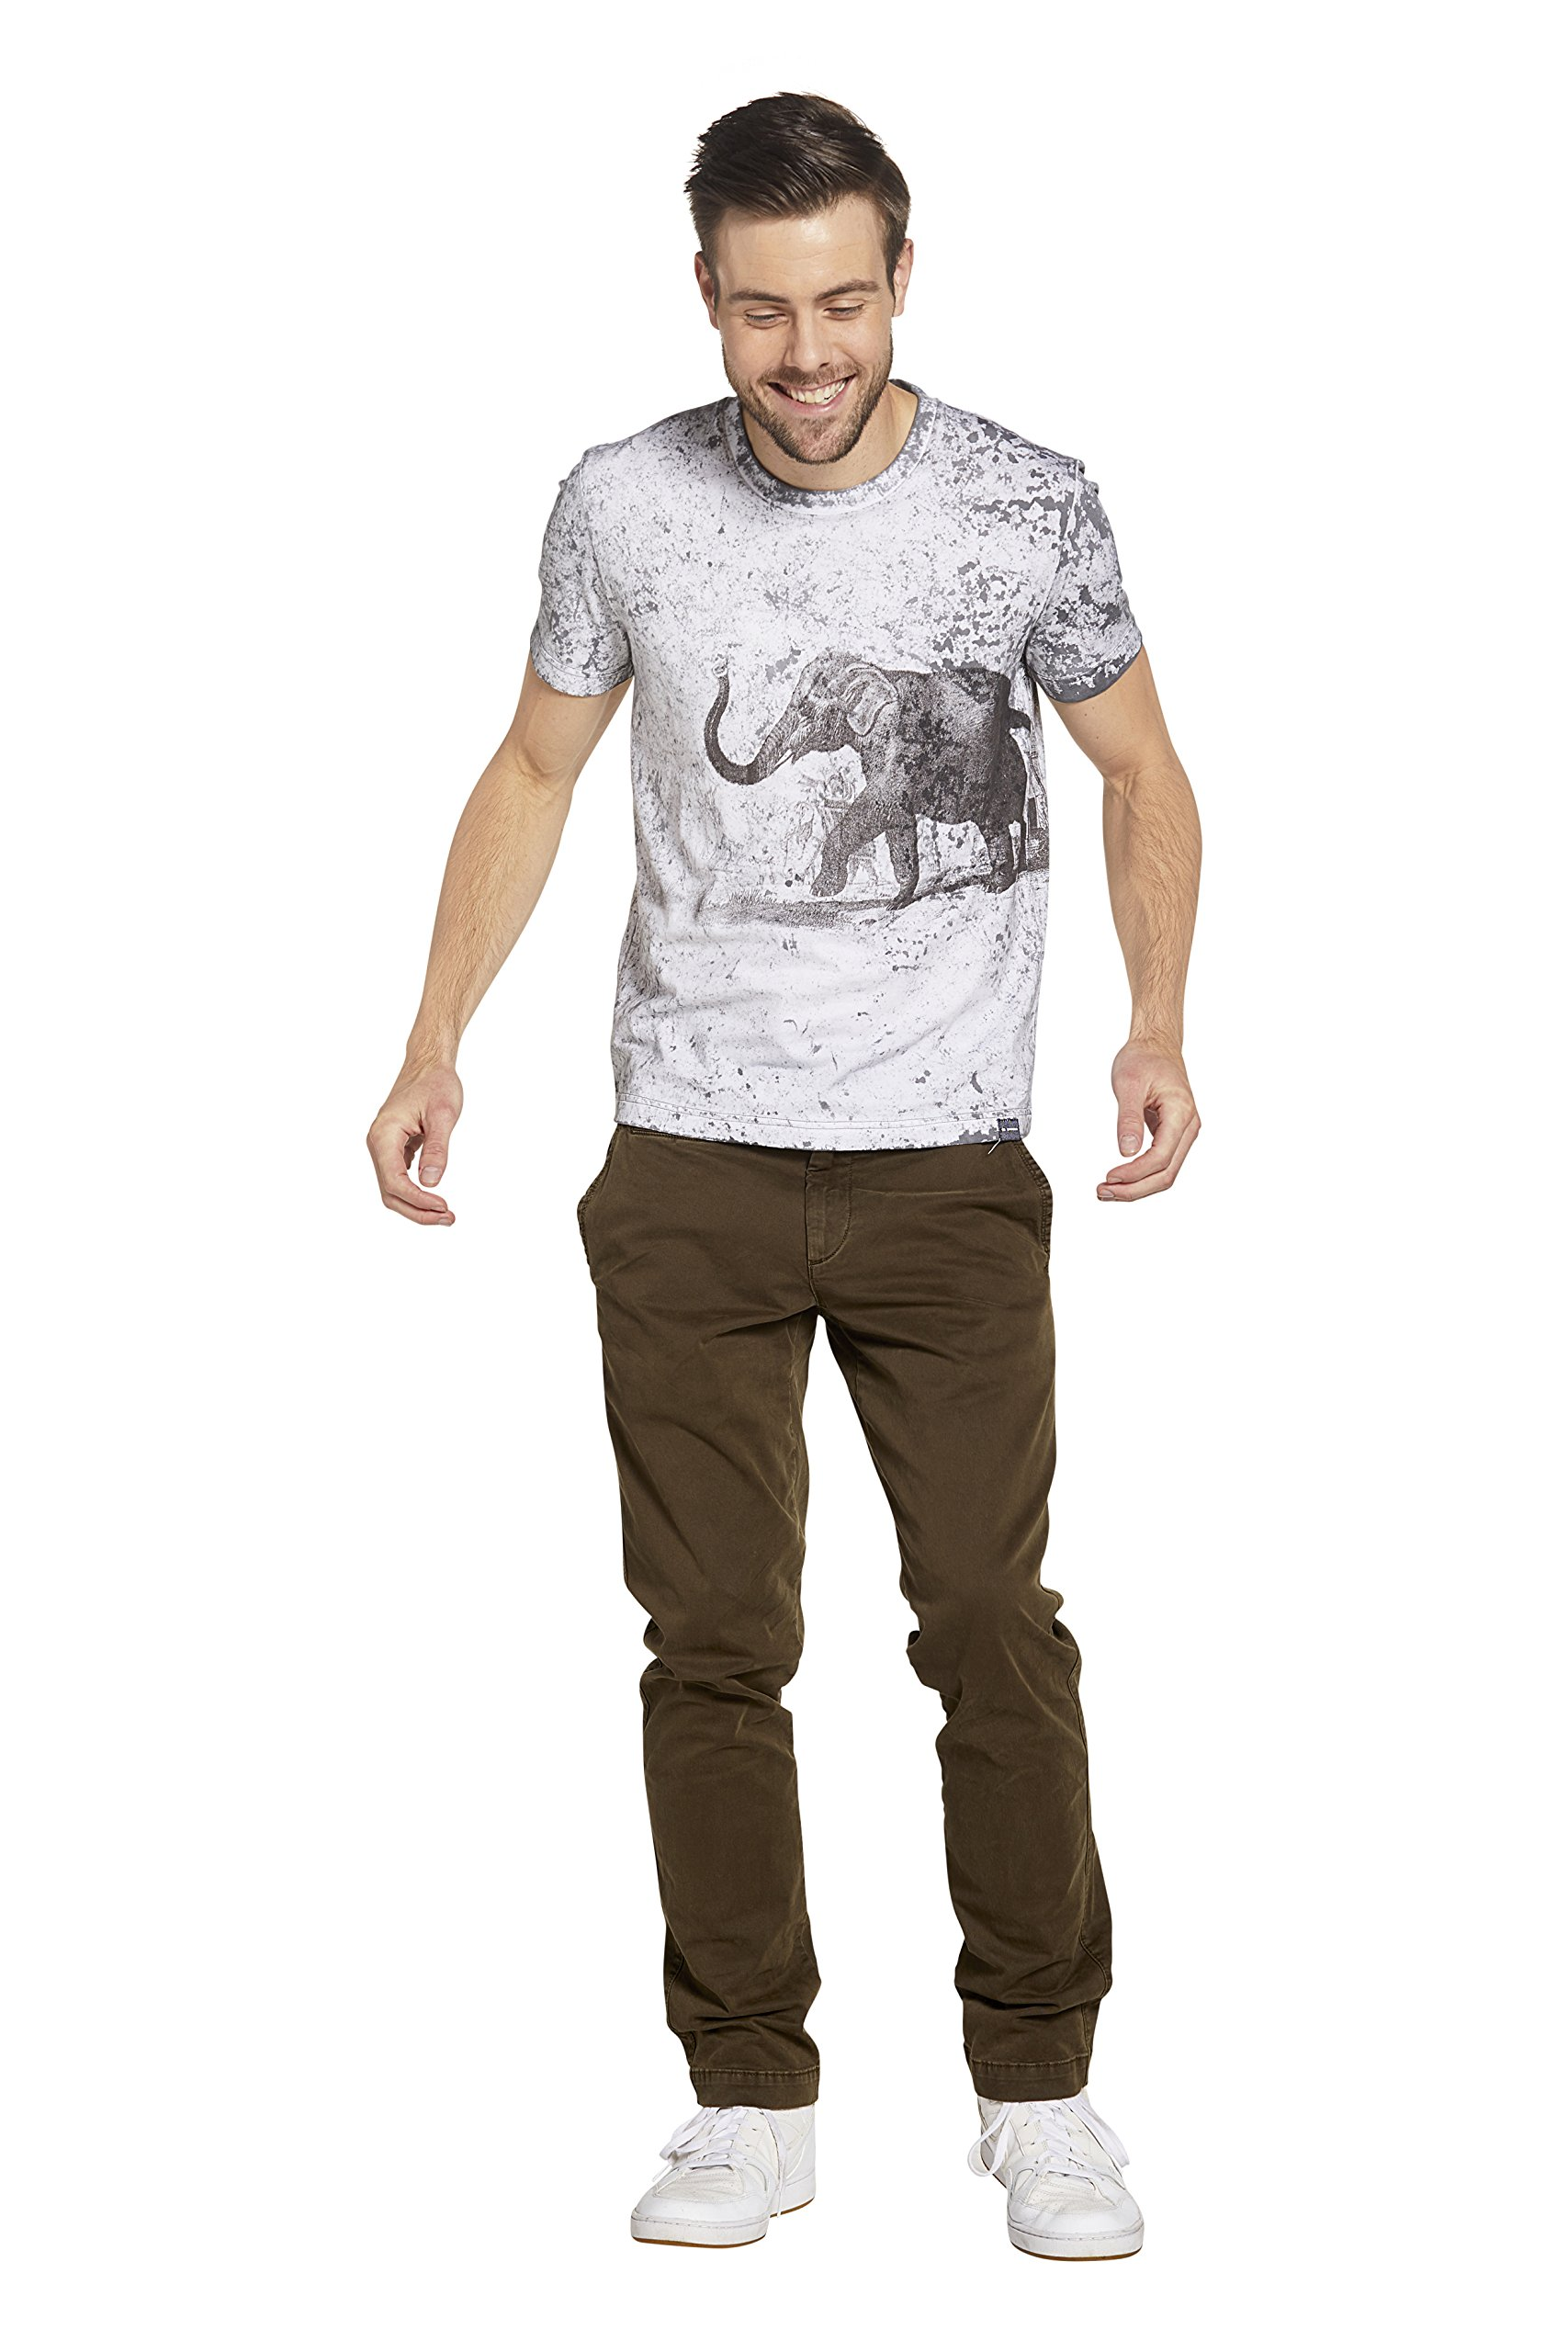 SOIZZI Fashion Men's Fine Cotton Short Sleeve Tee Special WashWith Elephant Print Pattern Ink Grey -M